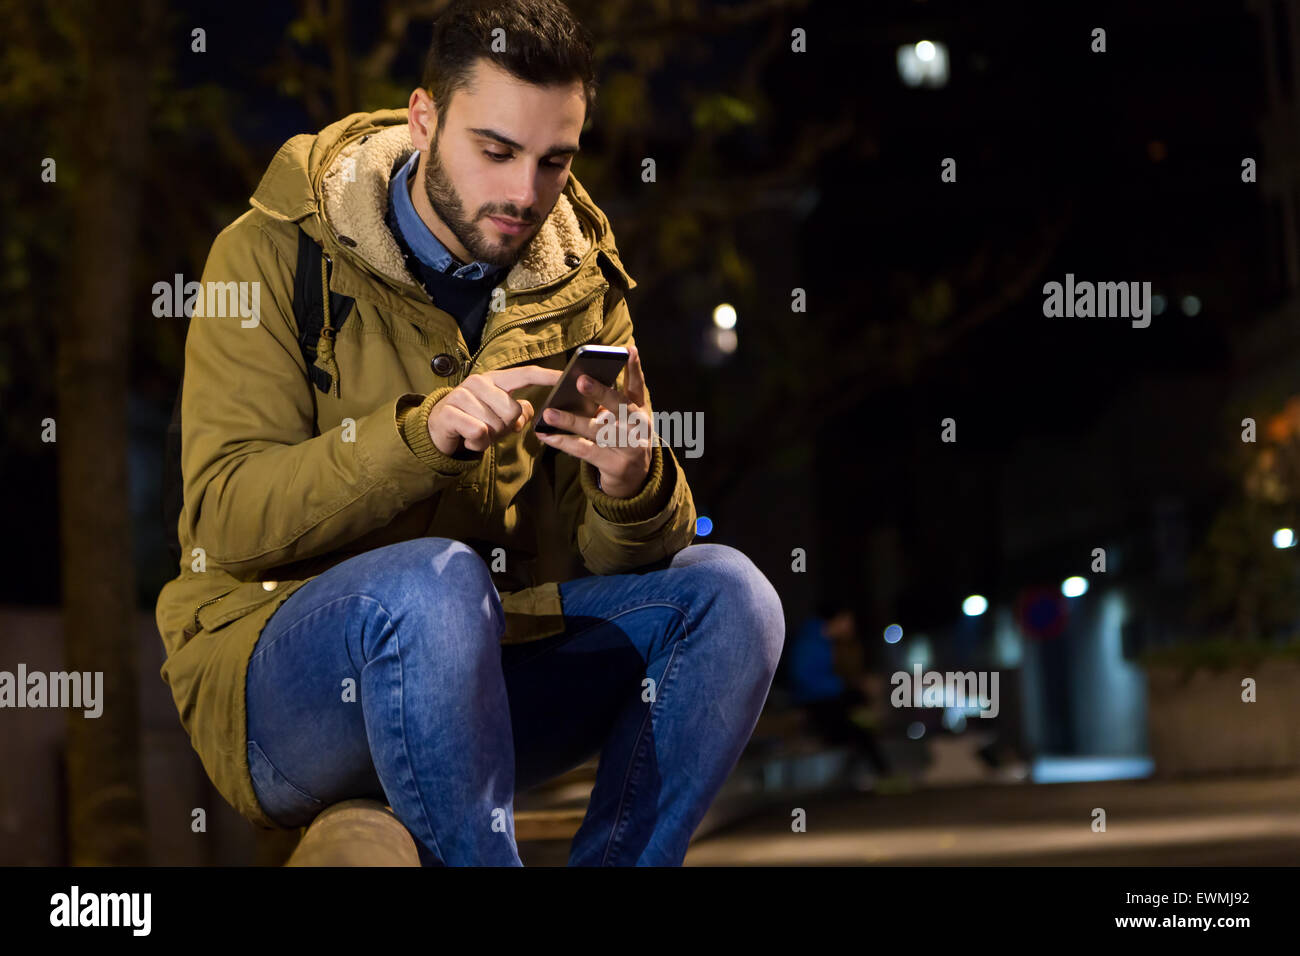 Outdoor portrait of young man using his mobile phone at night. - Stock Image